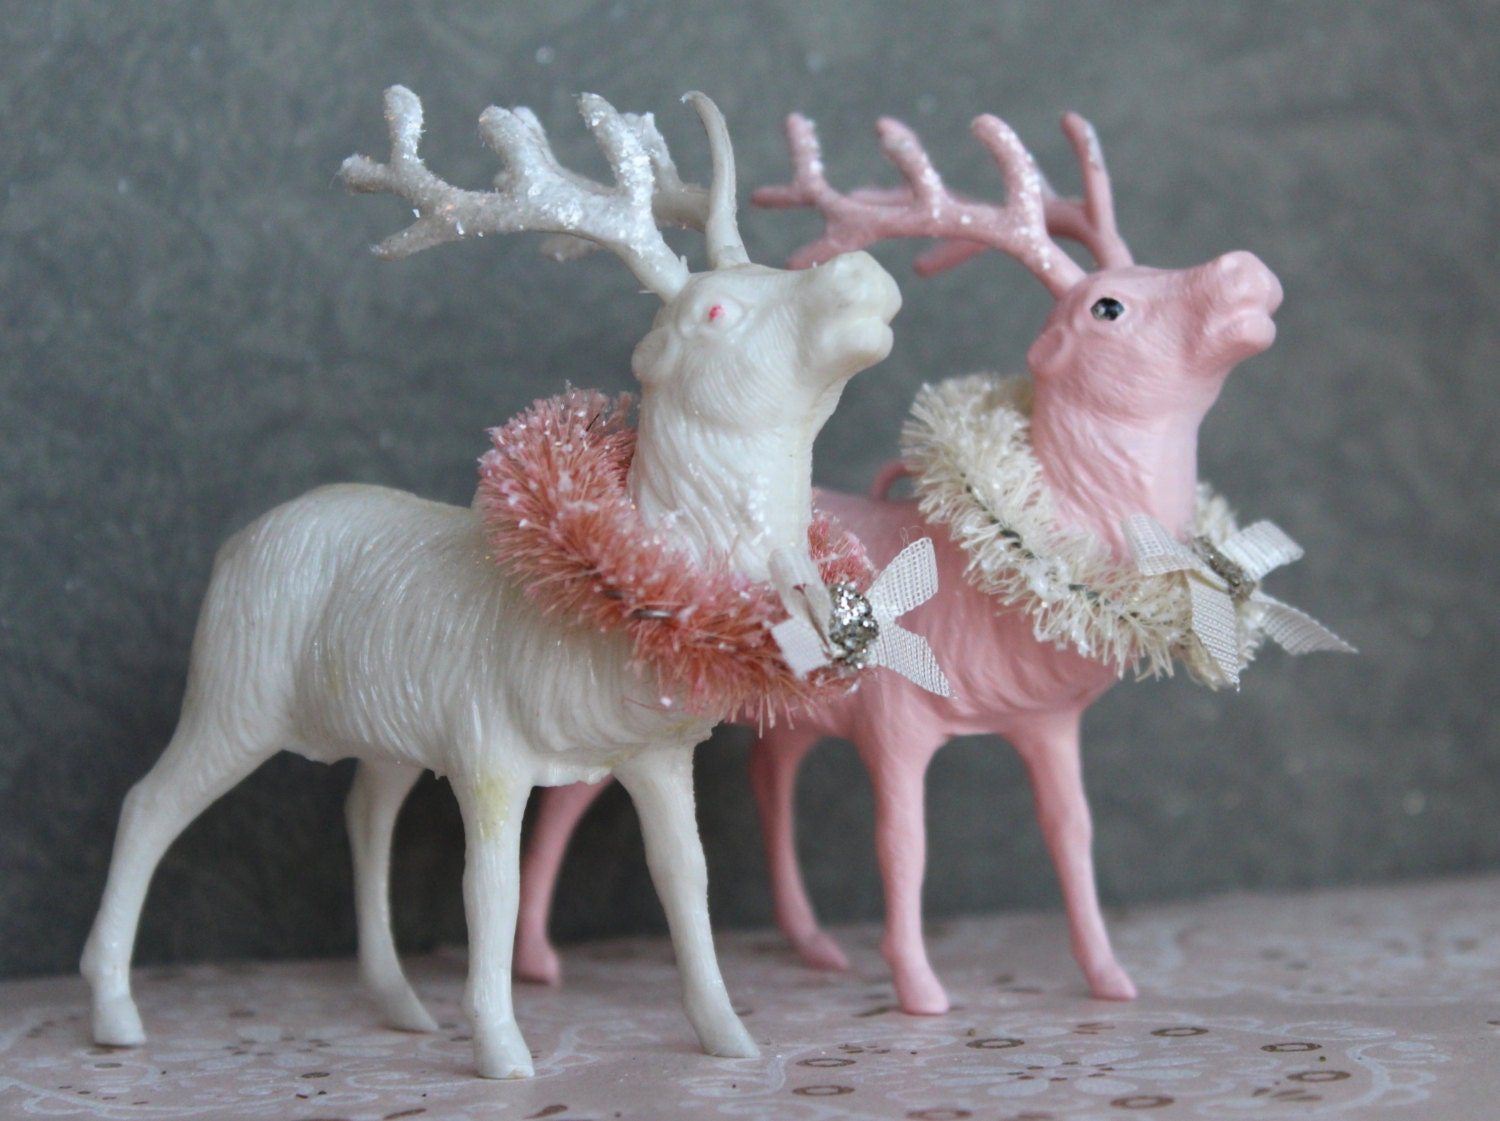 2 Pink Holiday Reindeer Decorations with Cream Wreaths - 1950s Retro Vintage Style Deer Ornament